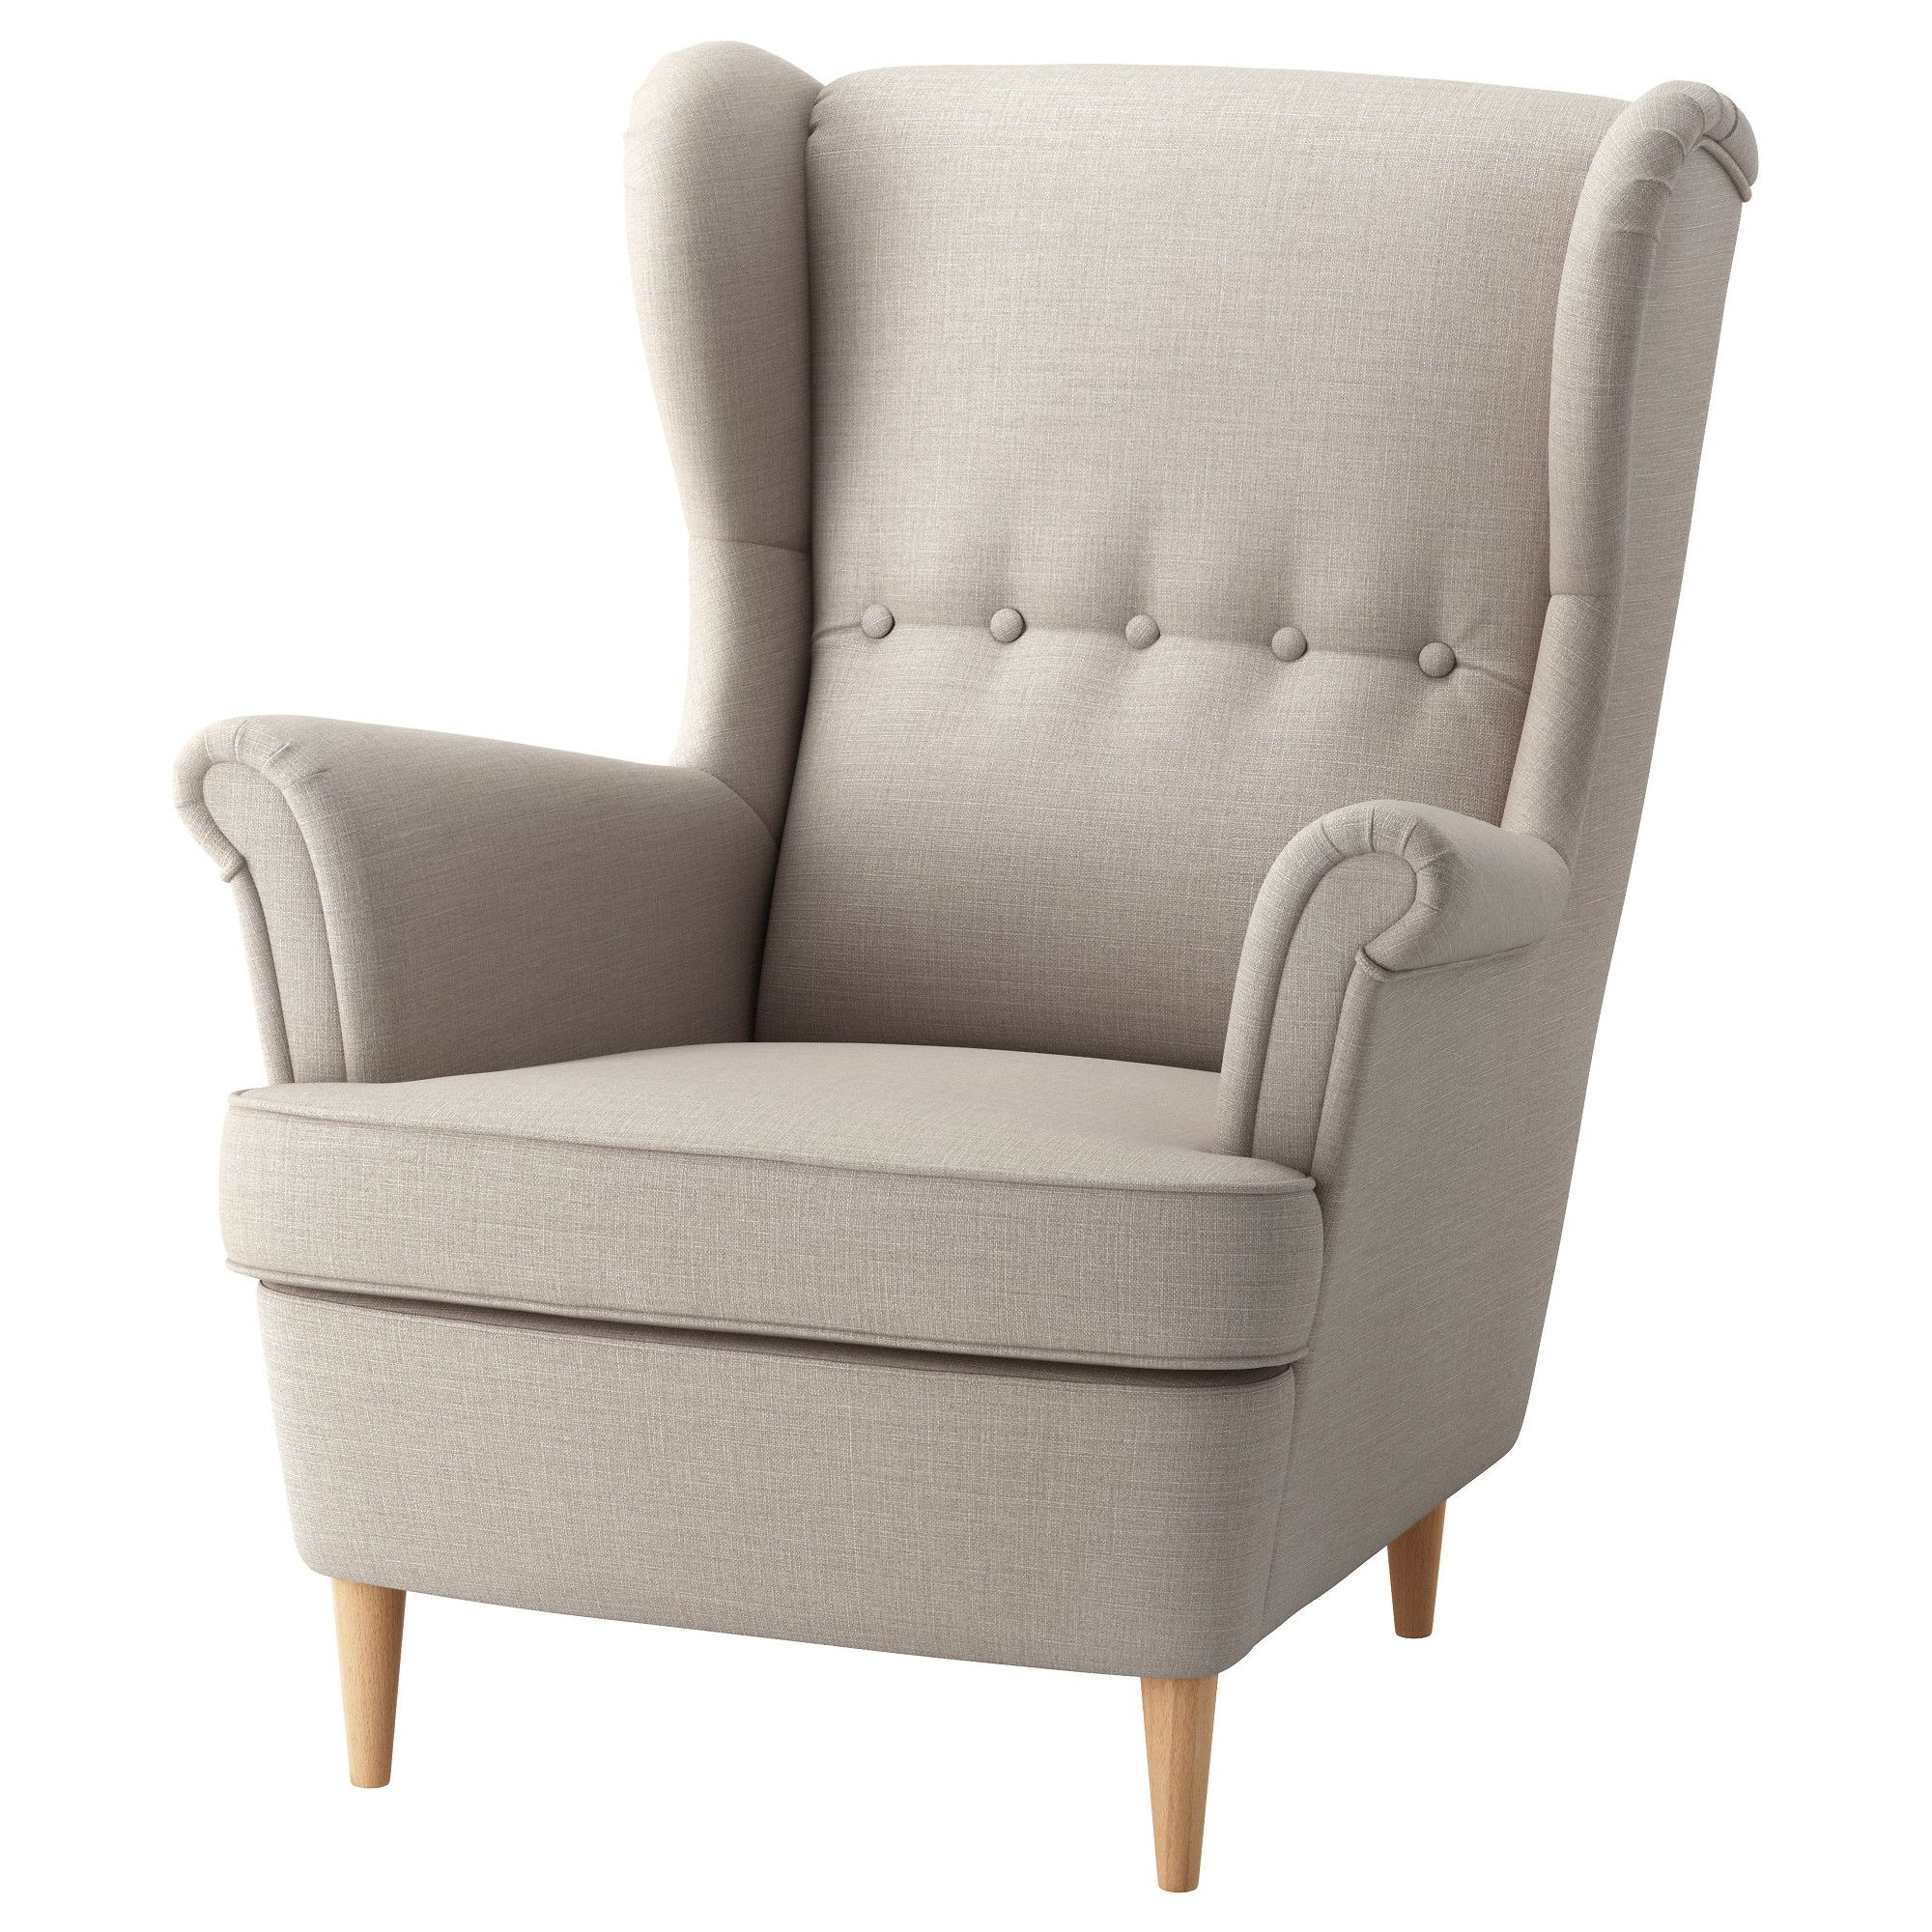 Strandmon Skiftebo Light Beige Wing Chair Ikea Ikea Armchair Wing Chair Ikea Strandmon